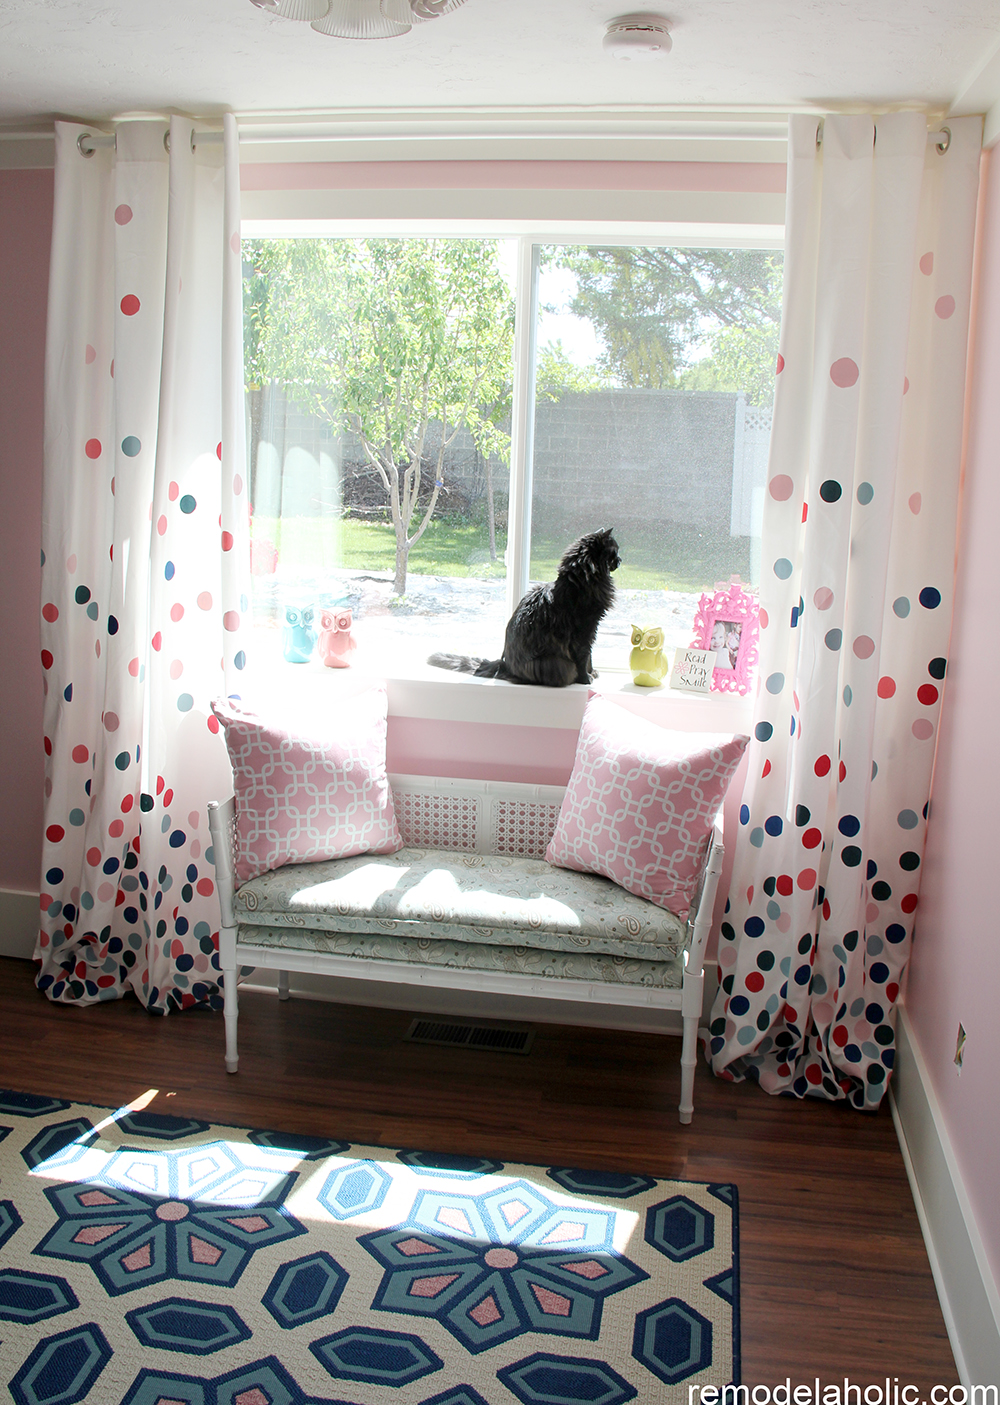 Girls pink and navy bedroom decorations  15. Remodelaholic   Confetti Drapes Tutorial